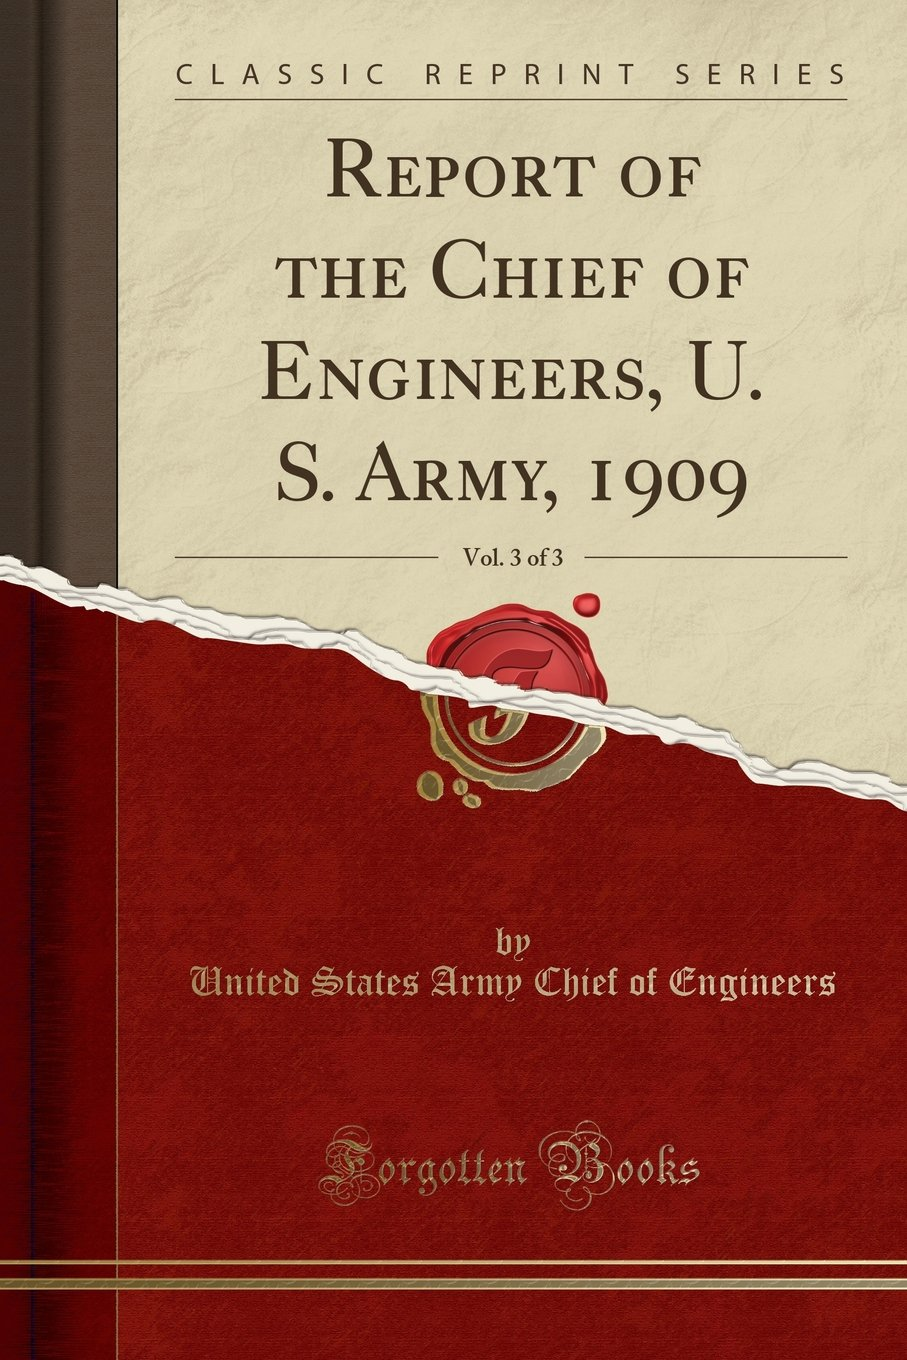 Download Report of the Chief of Engineers, U. S. Army, 1909, Vol. 3 of 3 (Classic Reprint) PDF